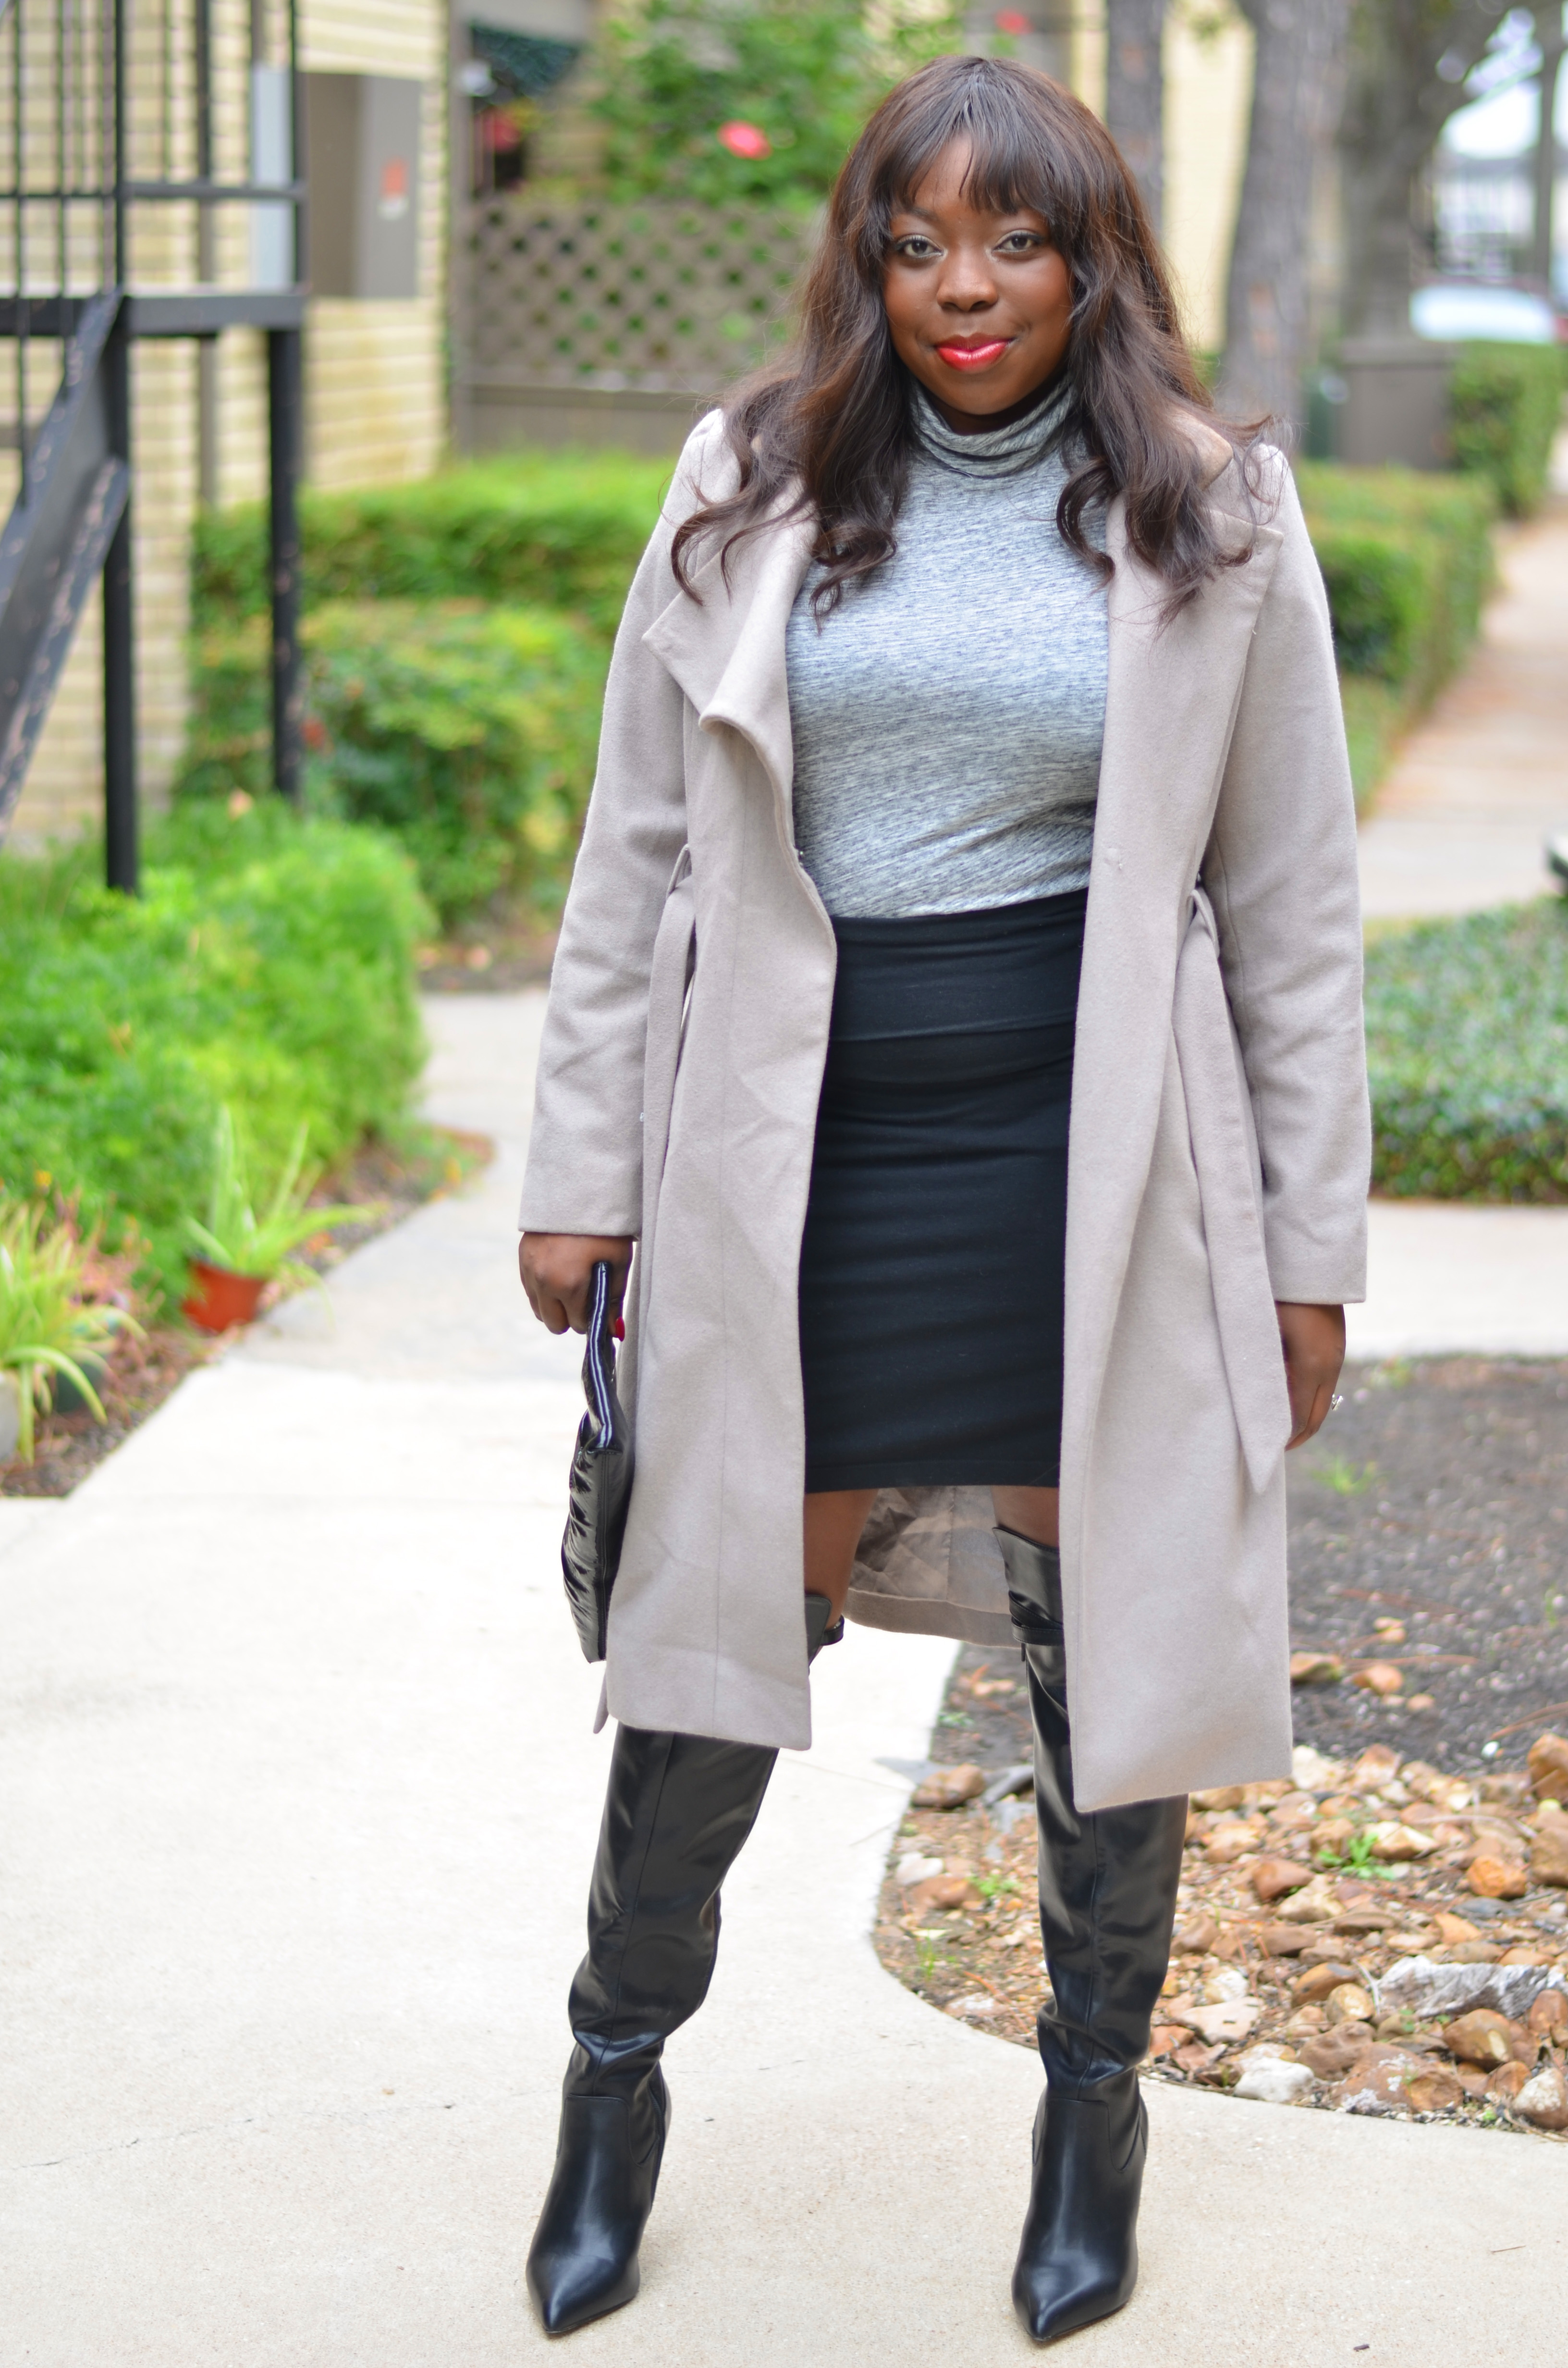 Trench coat and neutrals